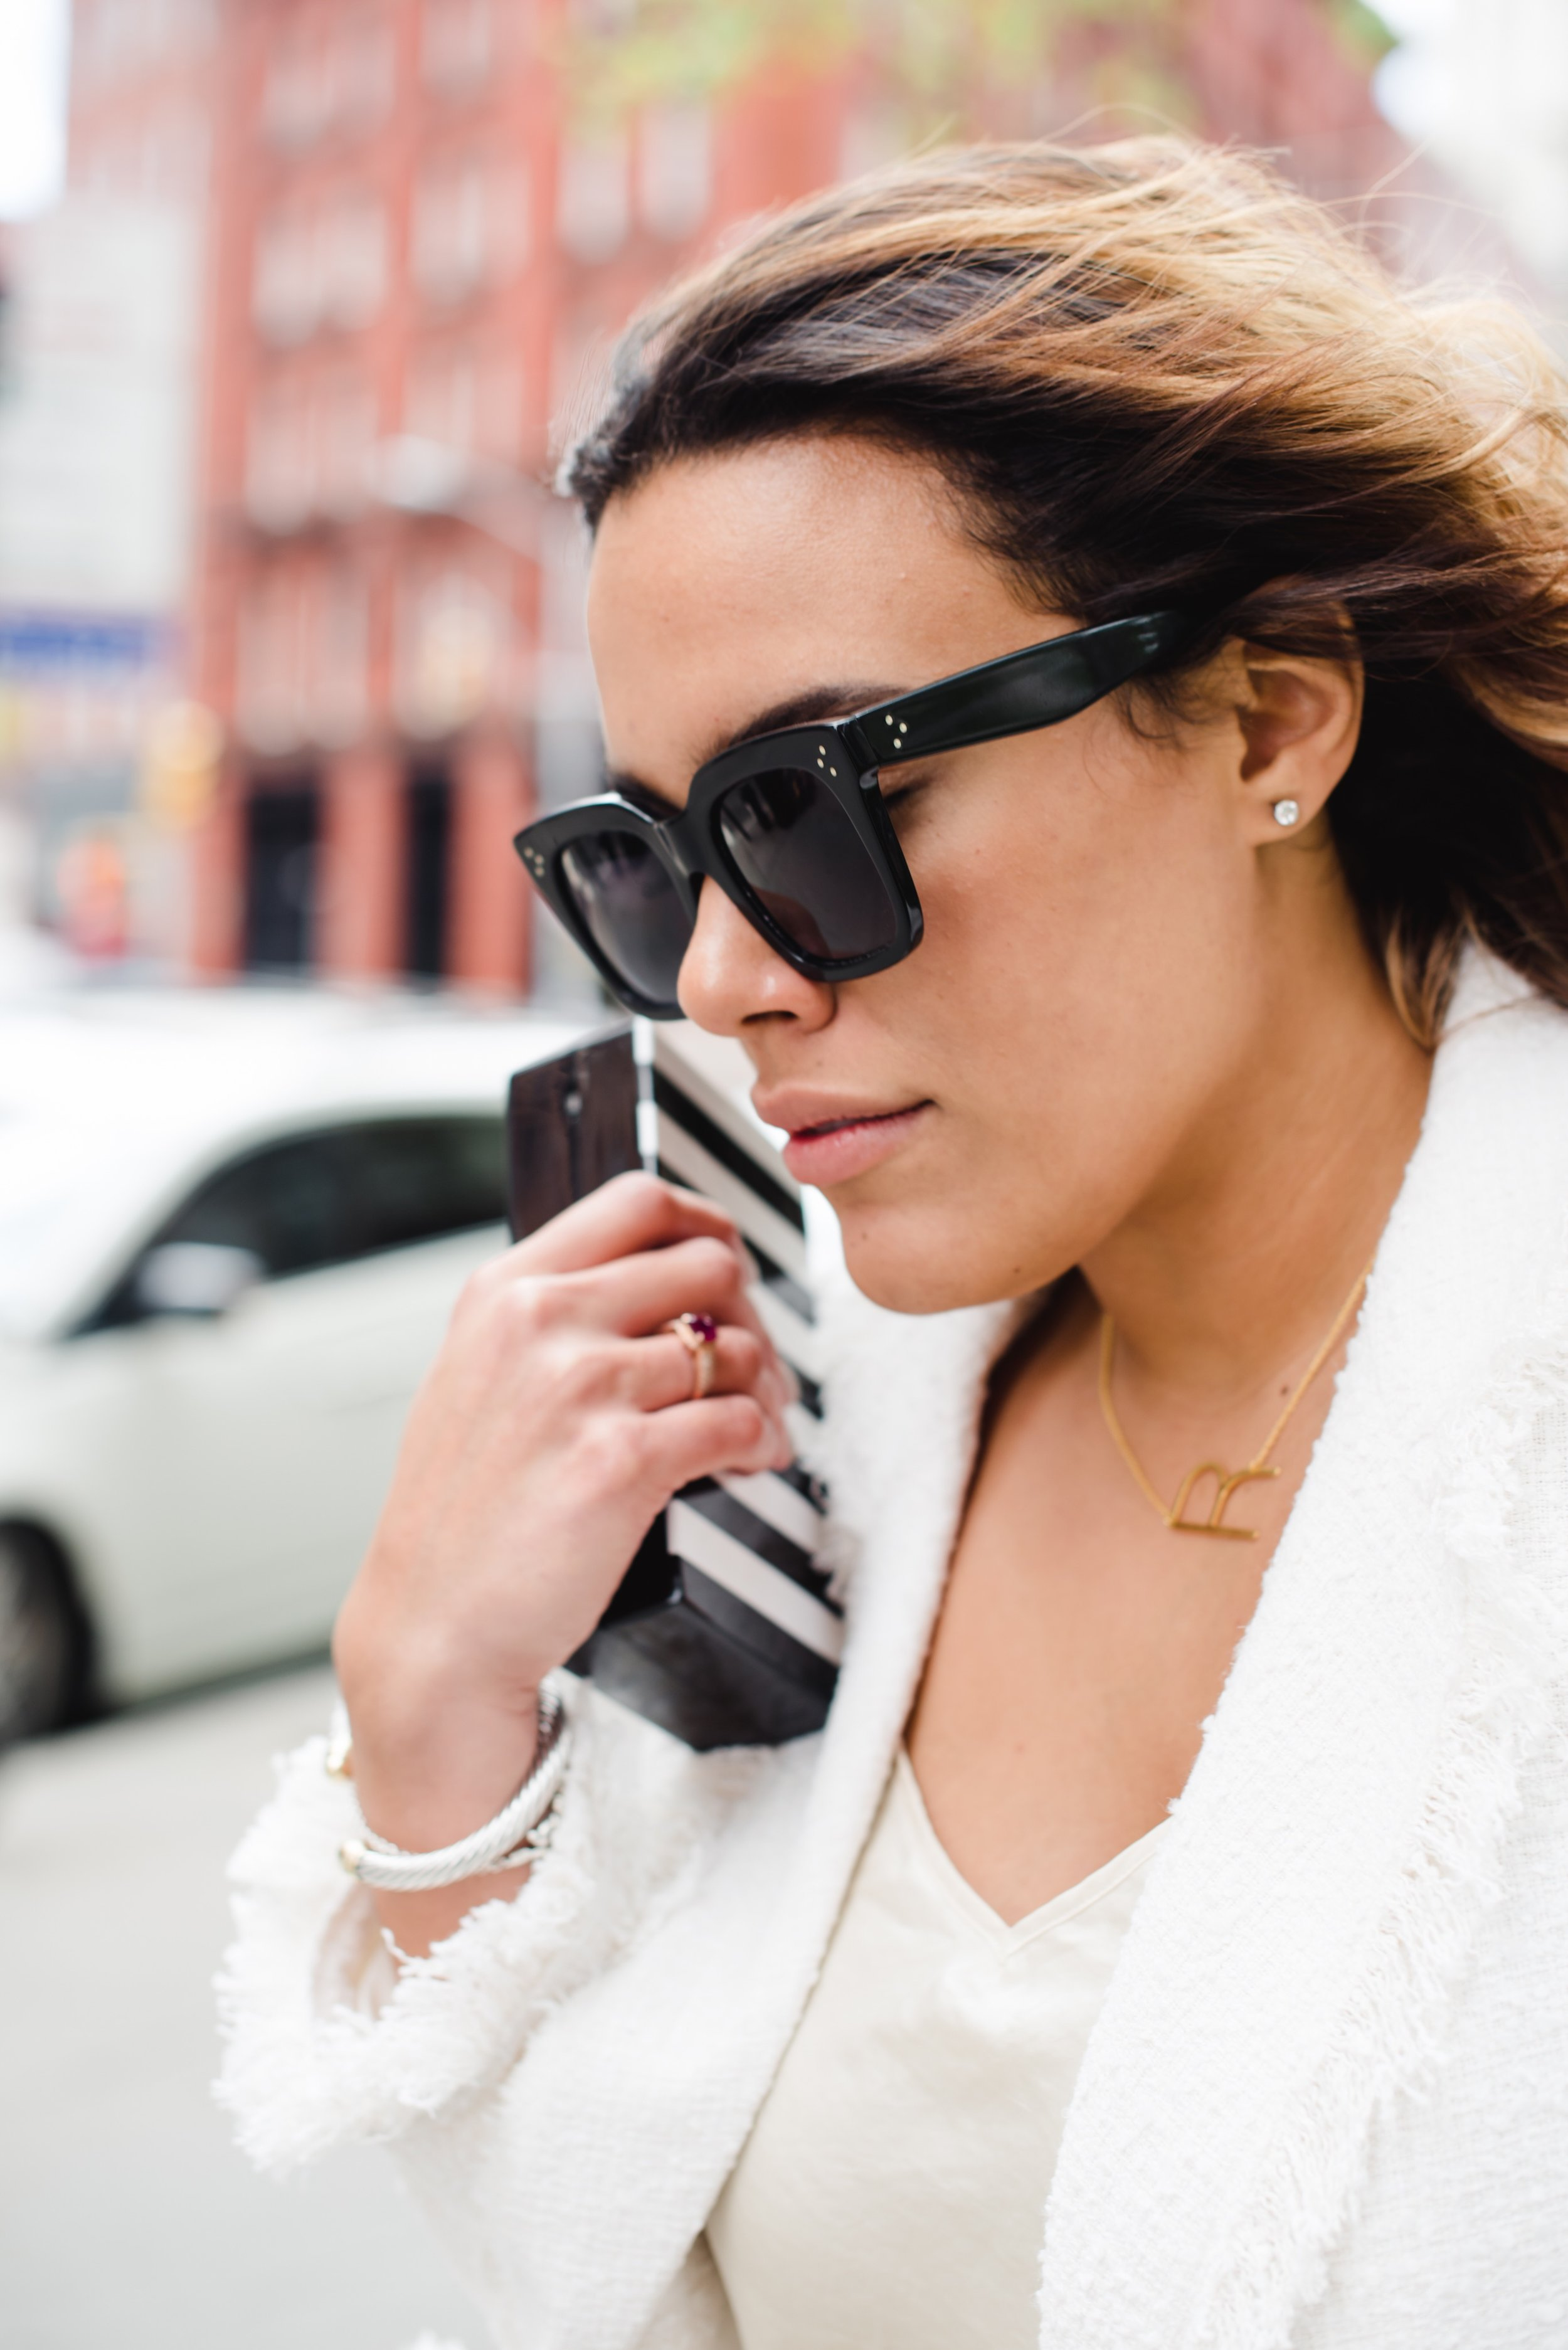 how-to-wear-zara-frayed-jacket-with-pearls-zara-daily-who-what-wear-latina-new-york-city-fashion-blogger-style-operator-summer-fashion.jpg